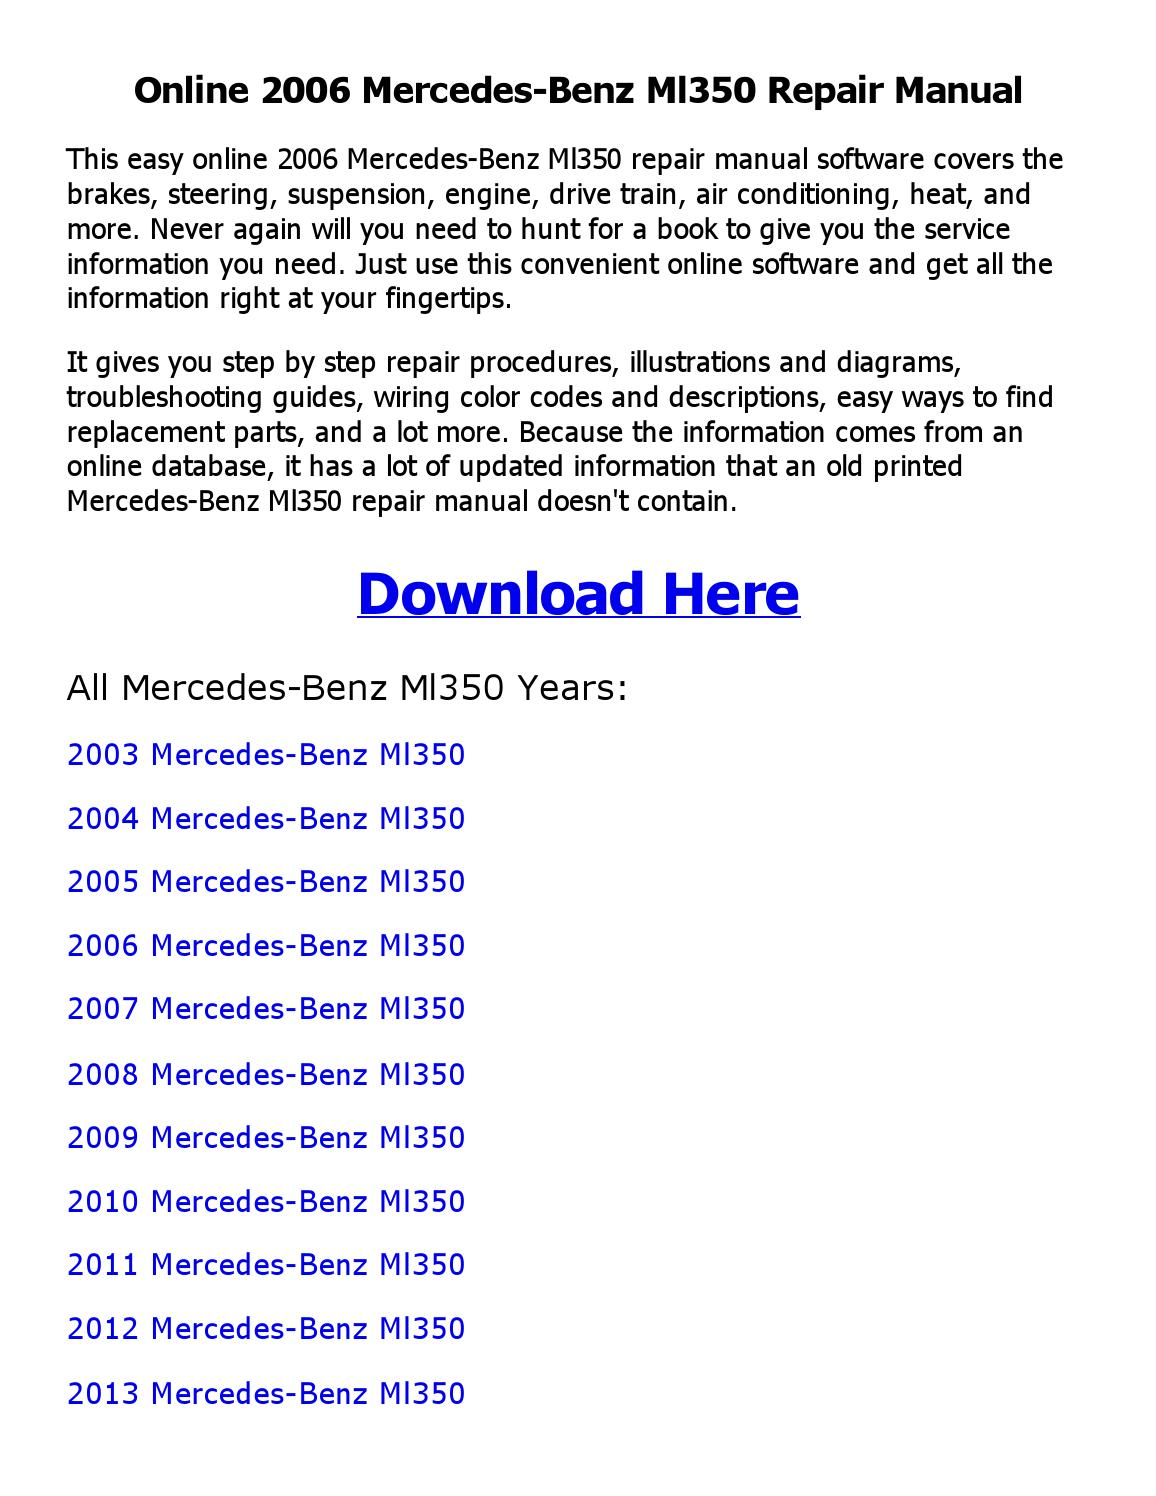 hight resolution of 2006 mercedes benz ml350 repair manual online by coollang issuu